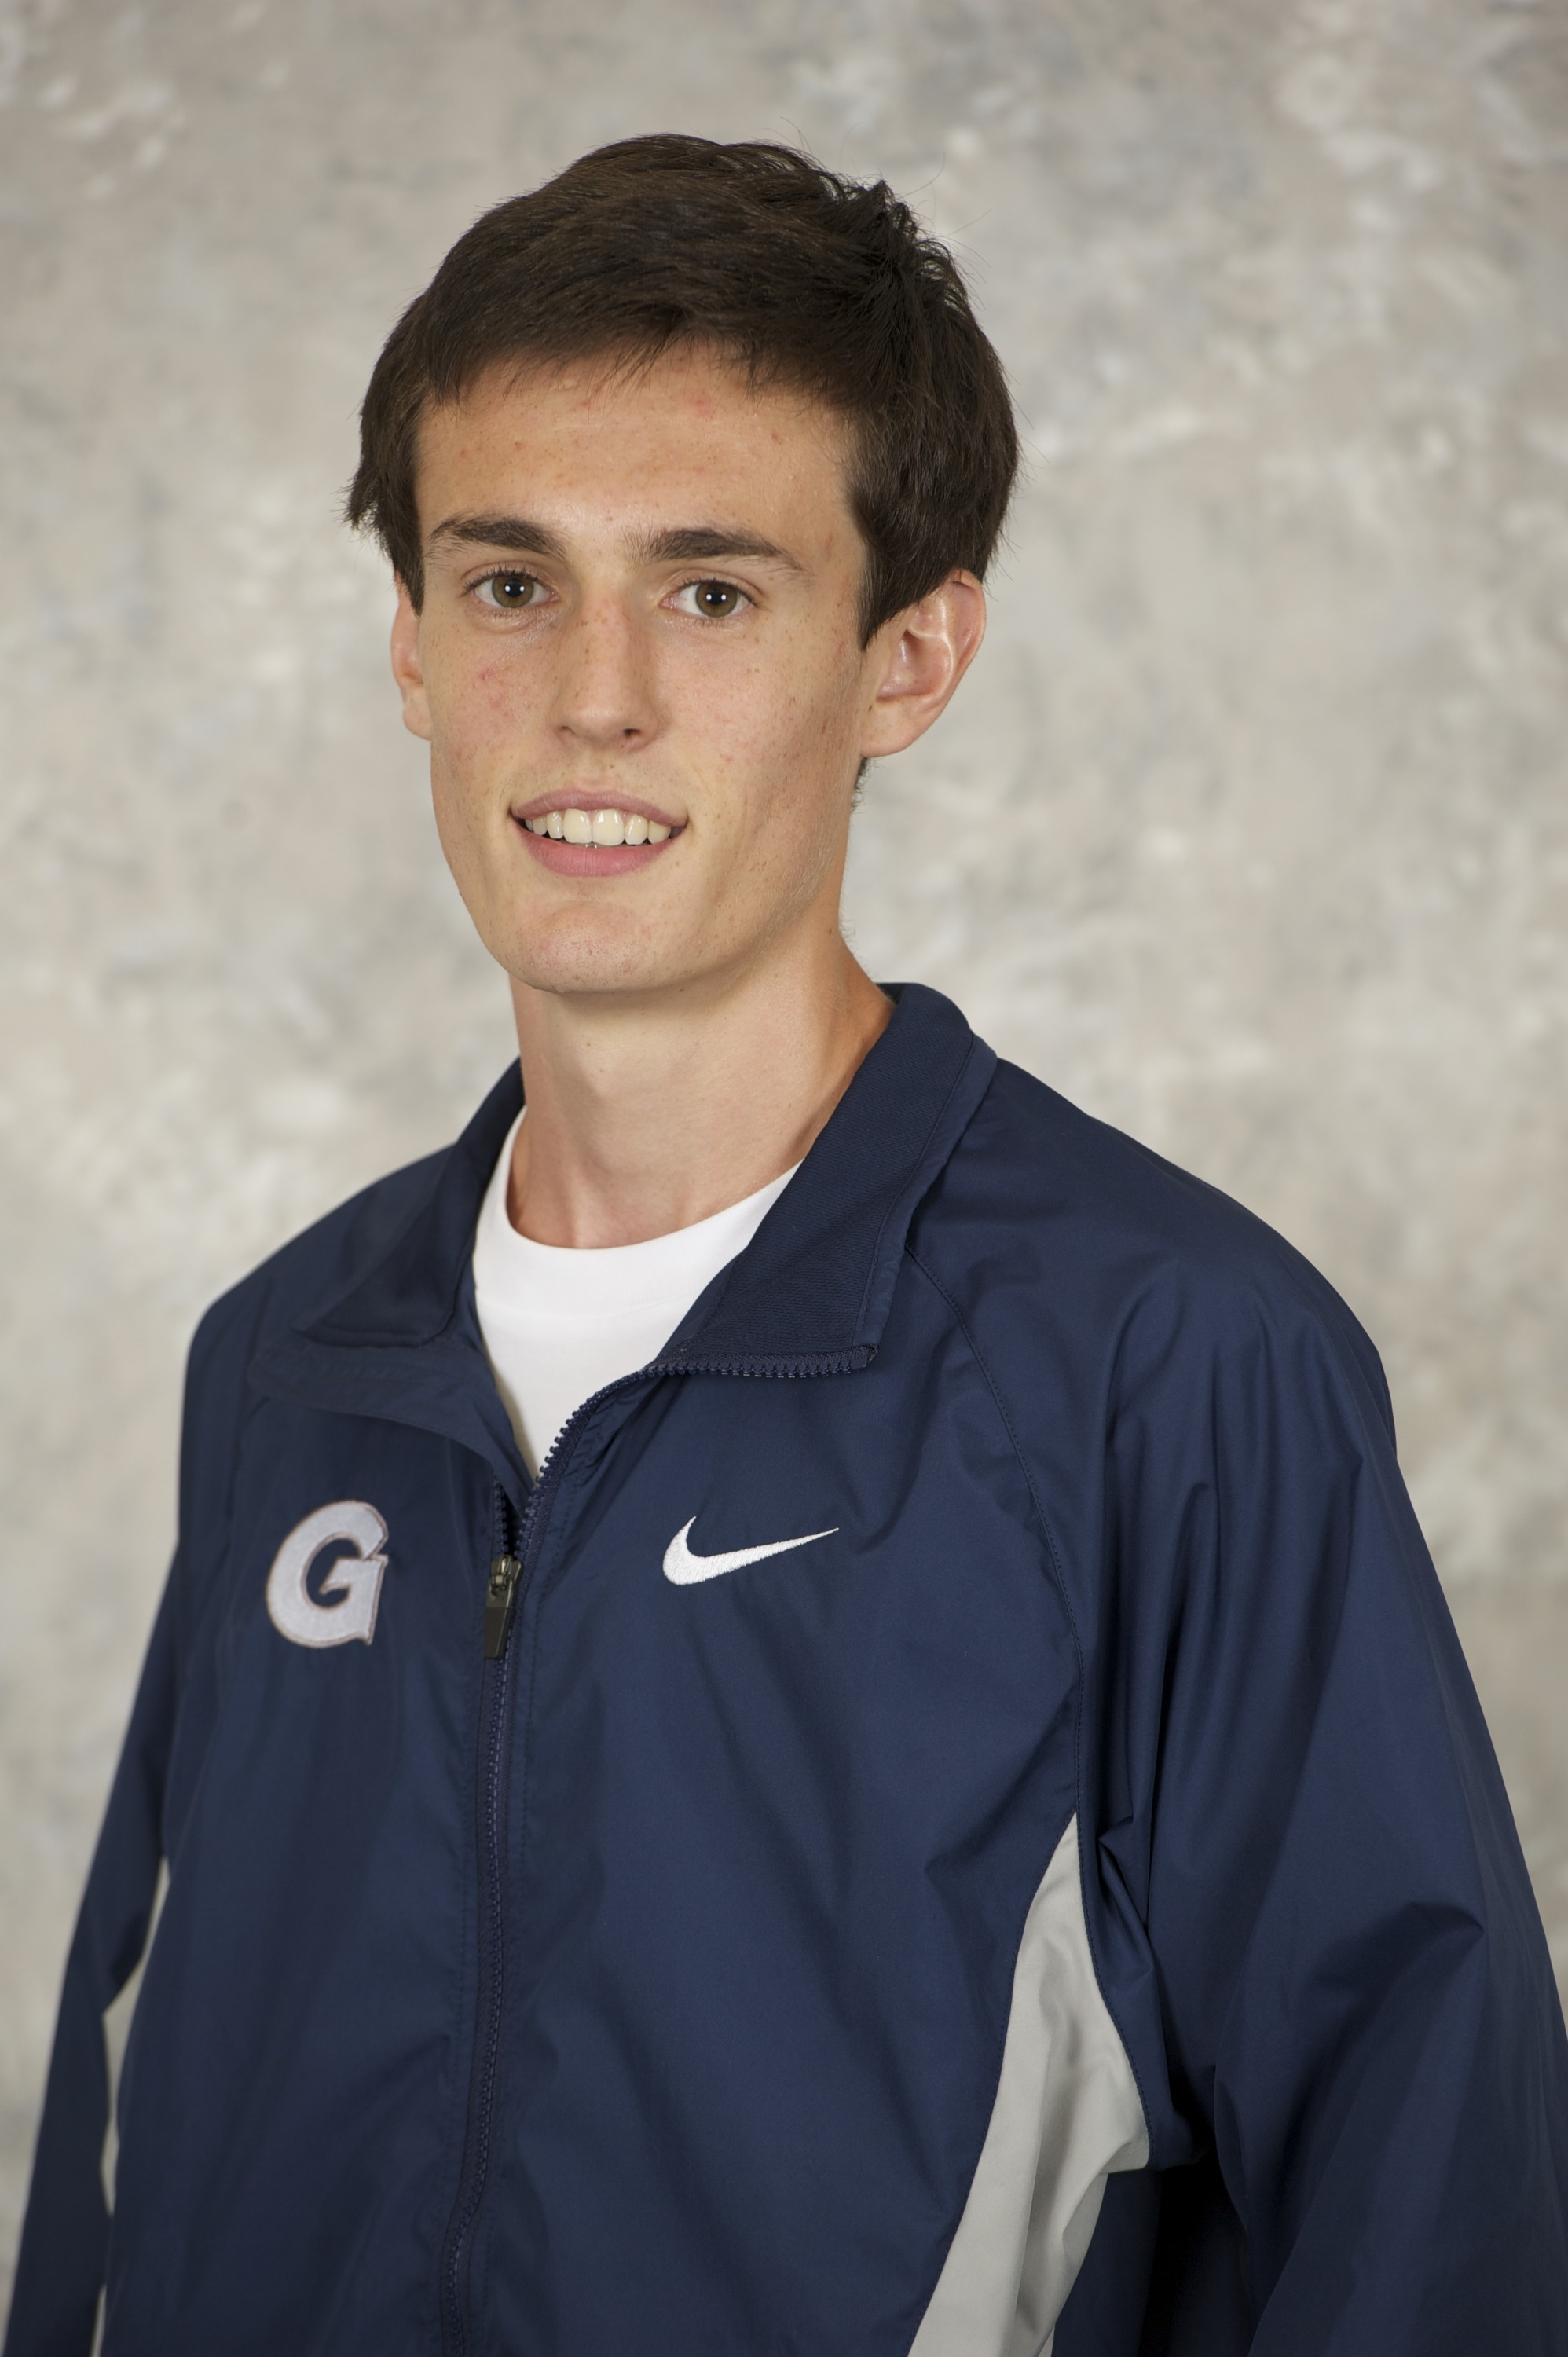 Scott Carpenter (pictured) opened the outdoor season with a PR in the 5,000-meter run, shaving nearly 15 seconds off his indoor best.